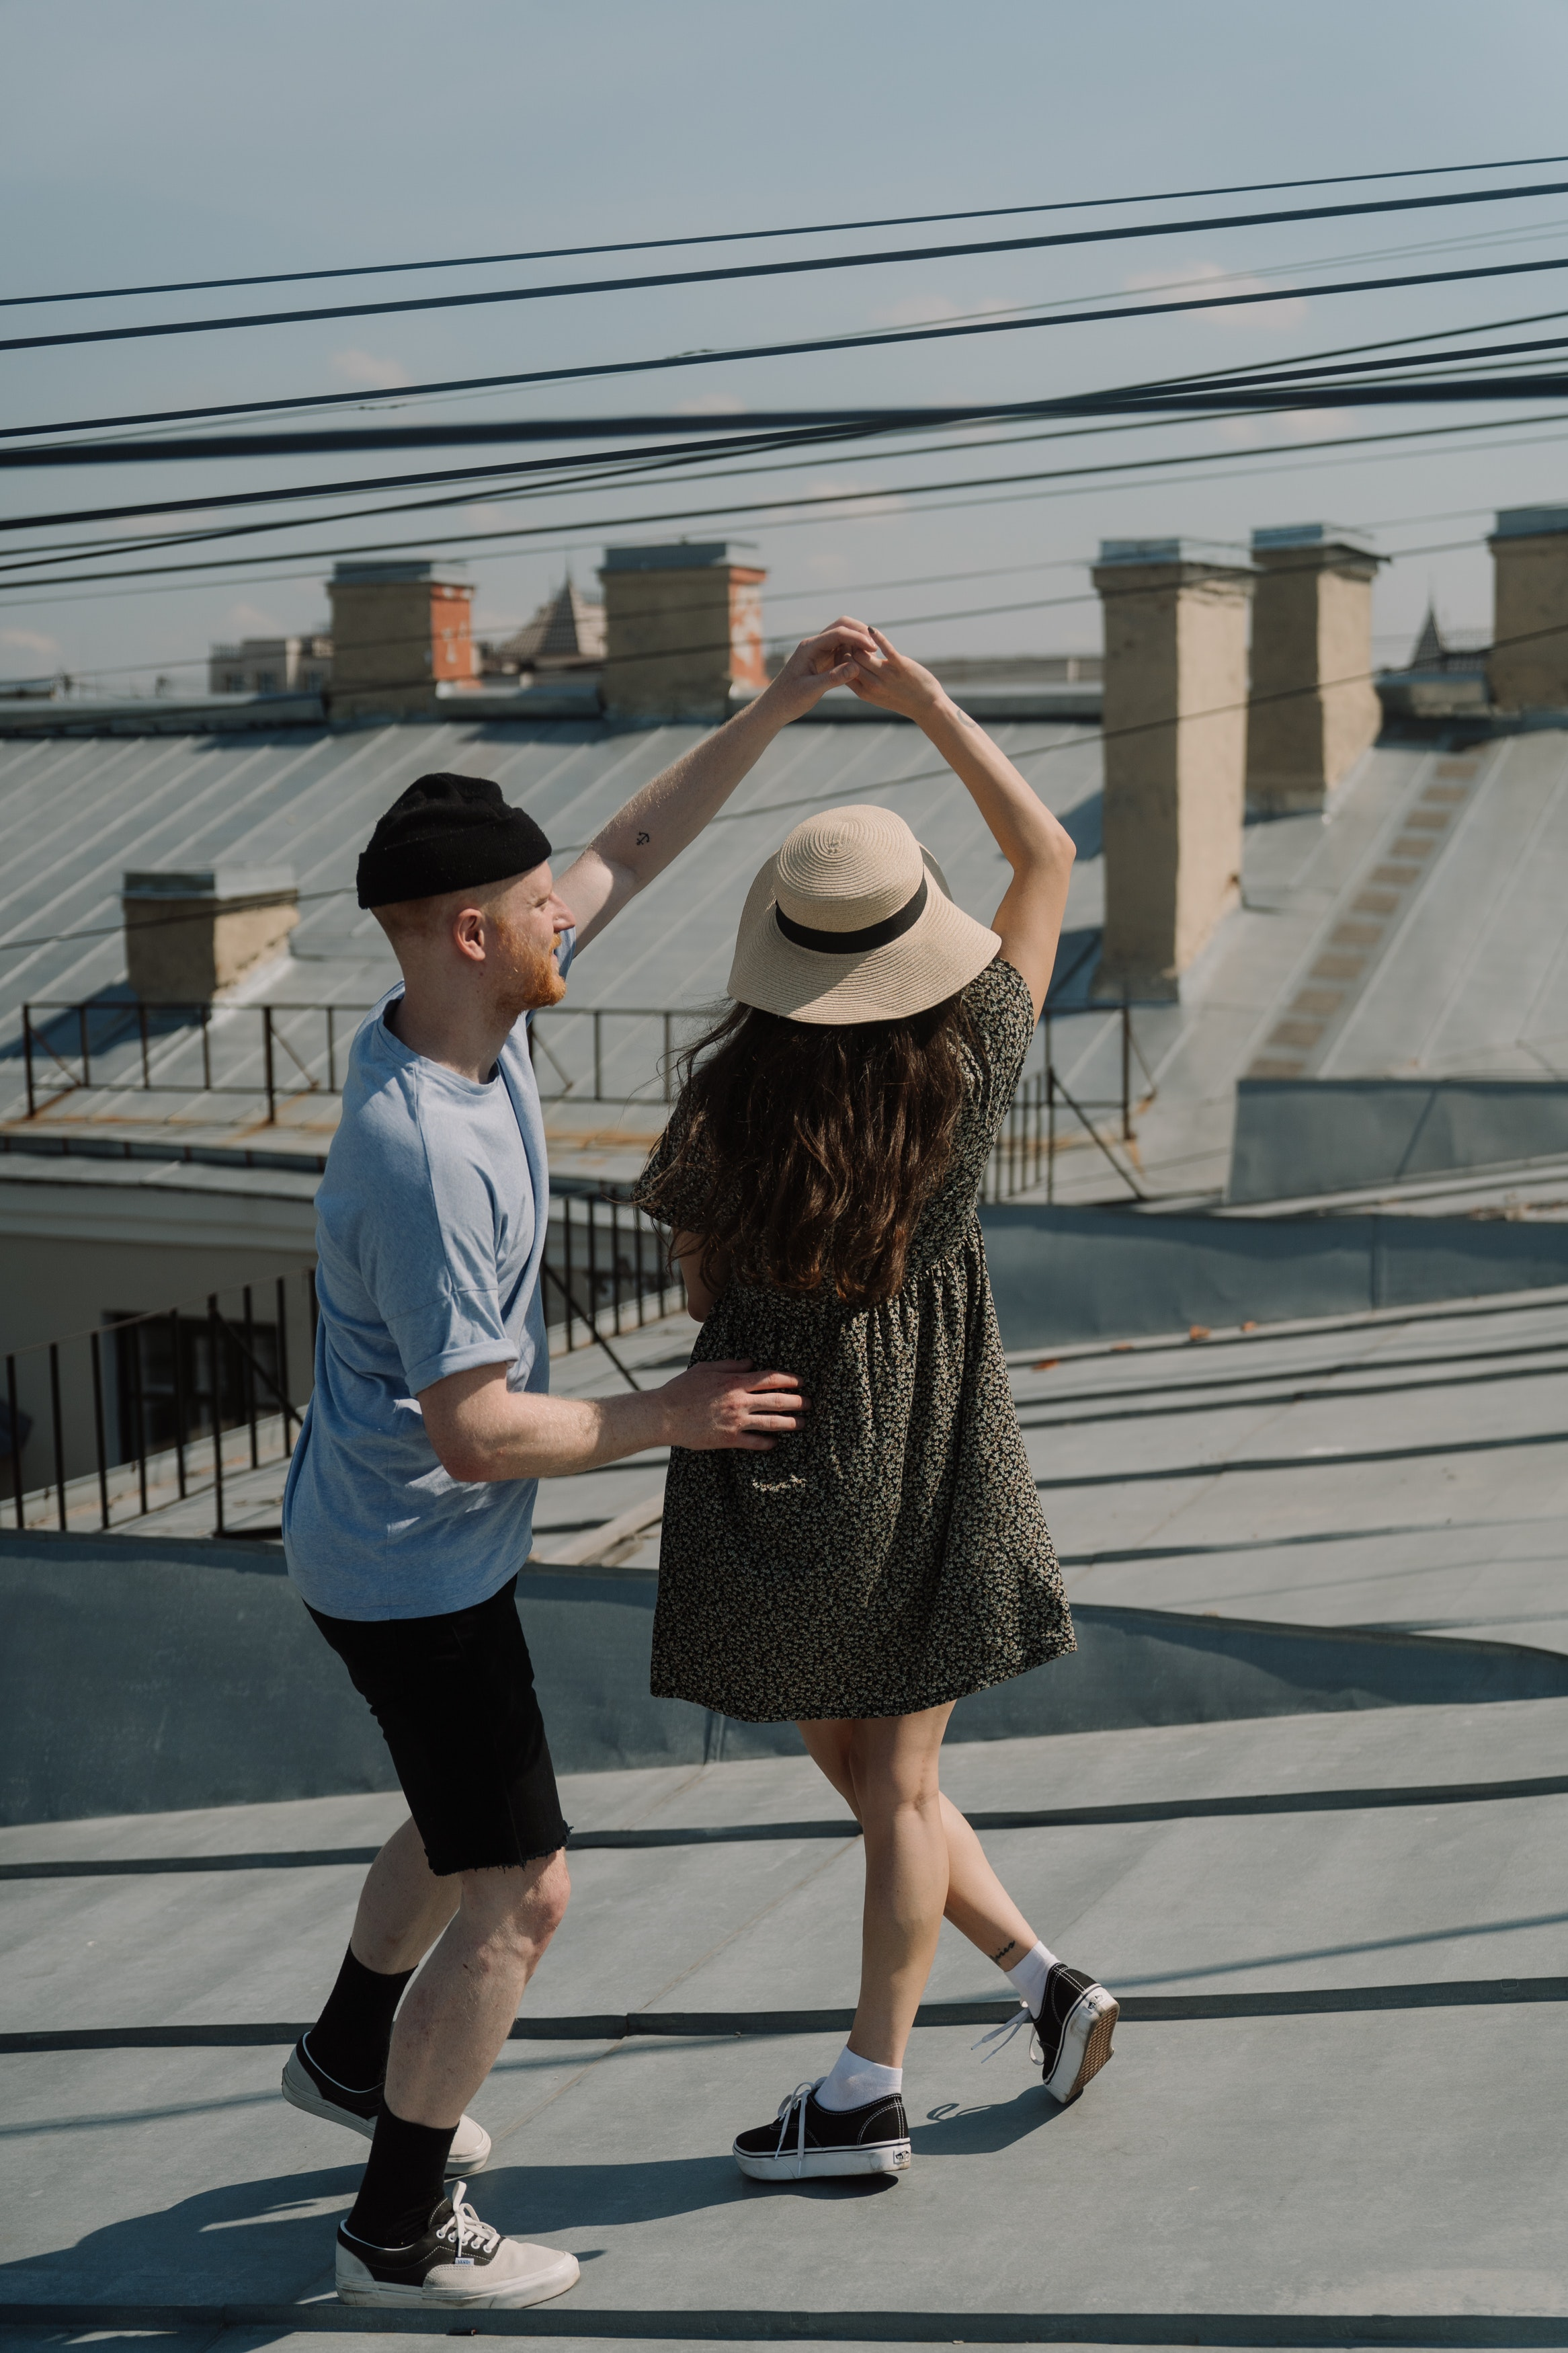 couple_dancing_on_the_foor__freeman_roofing_4201_auckland_pace__fl_32571_(850)_994-1078__https-::g.page:pensacola-roof-repair?share.jpg